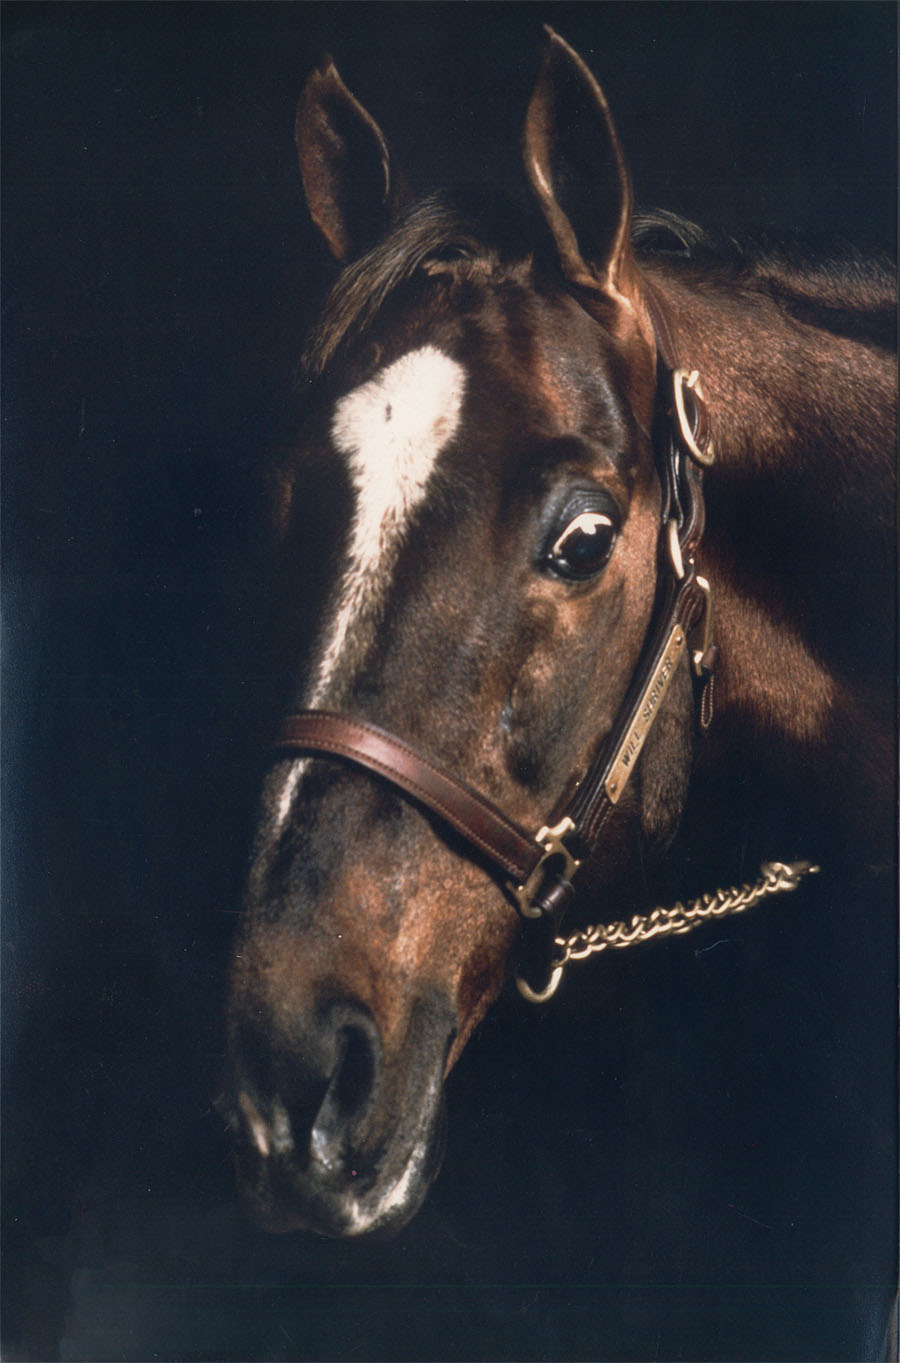 When choosing a stallion, remember that there is an ineffable quality to great horses, as demonstrated by this picture of the great sire CH Will Shriver.